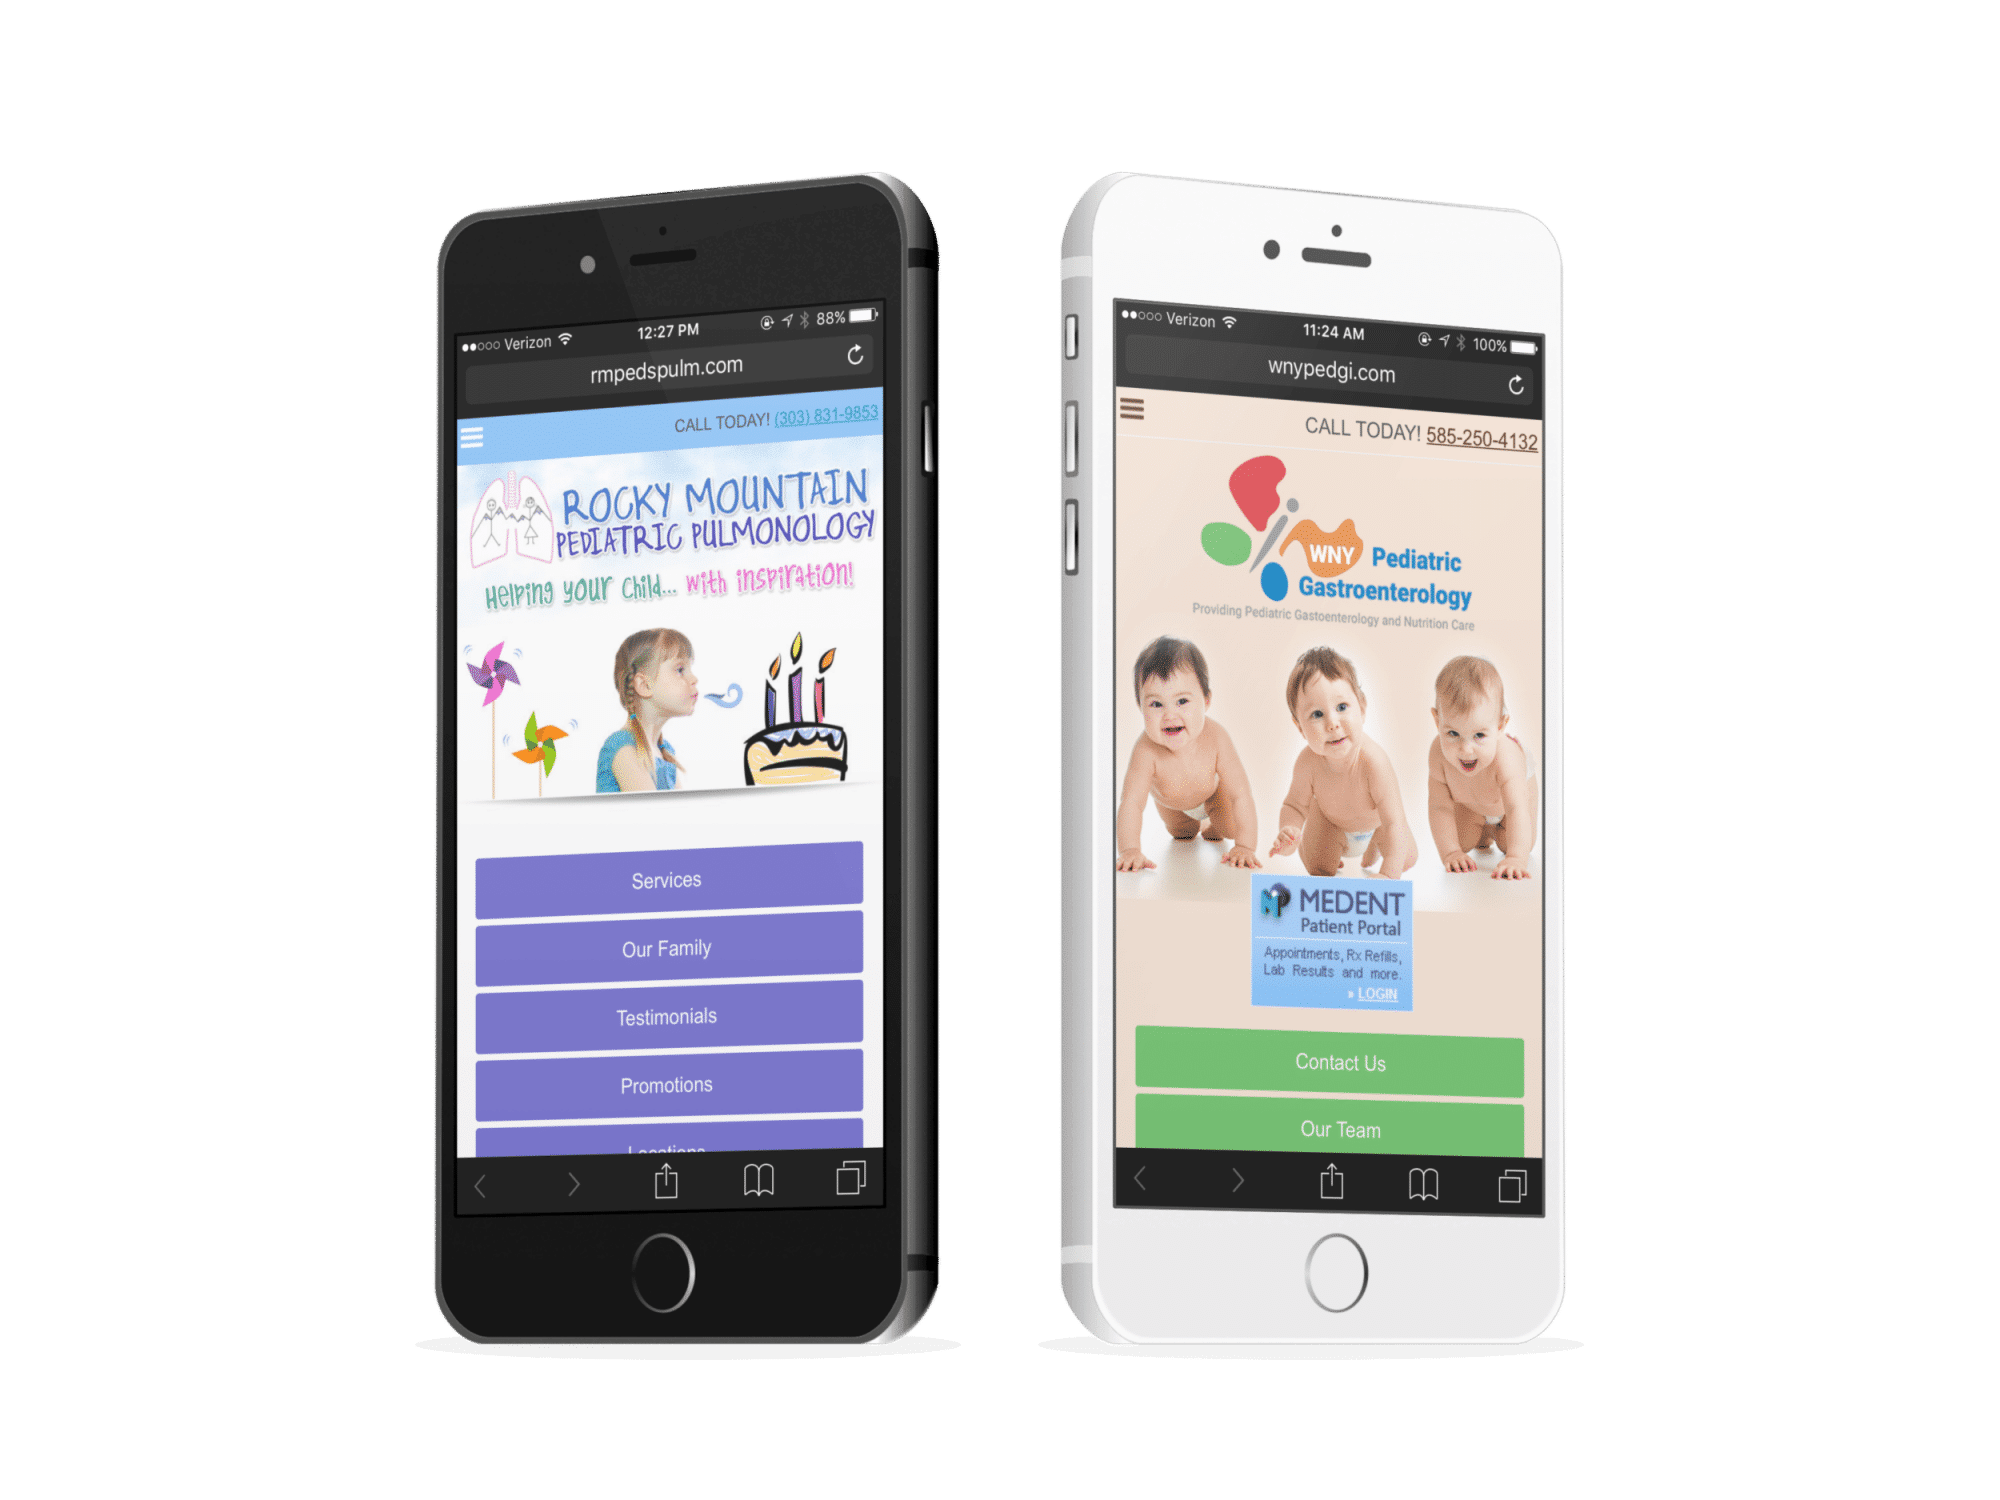 Perdiatrician Mobile Websites Of Two Pediatrics Practice With Kids Images On Them